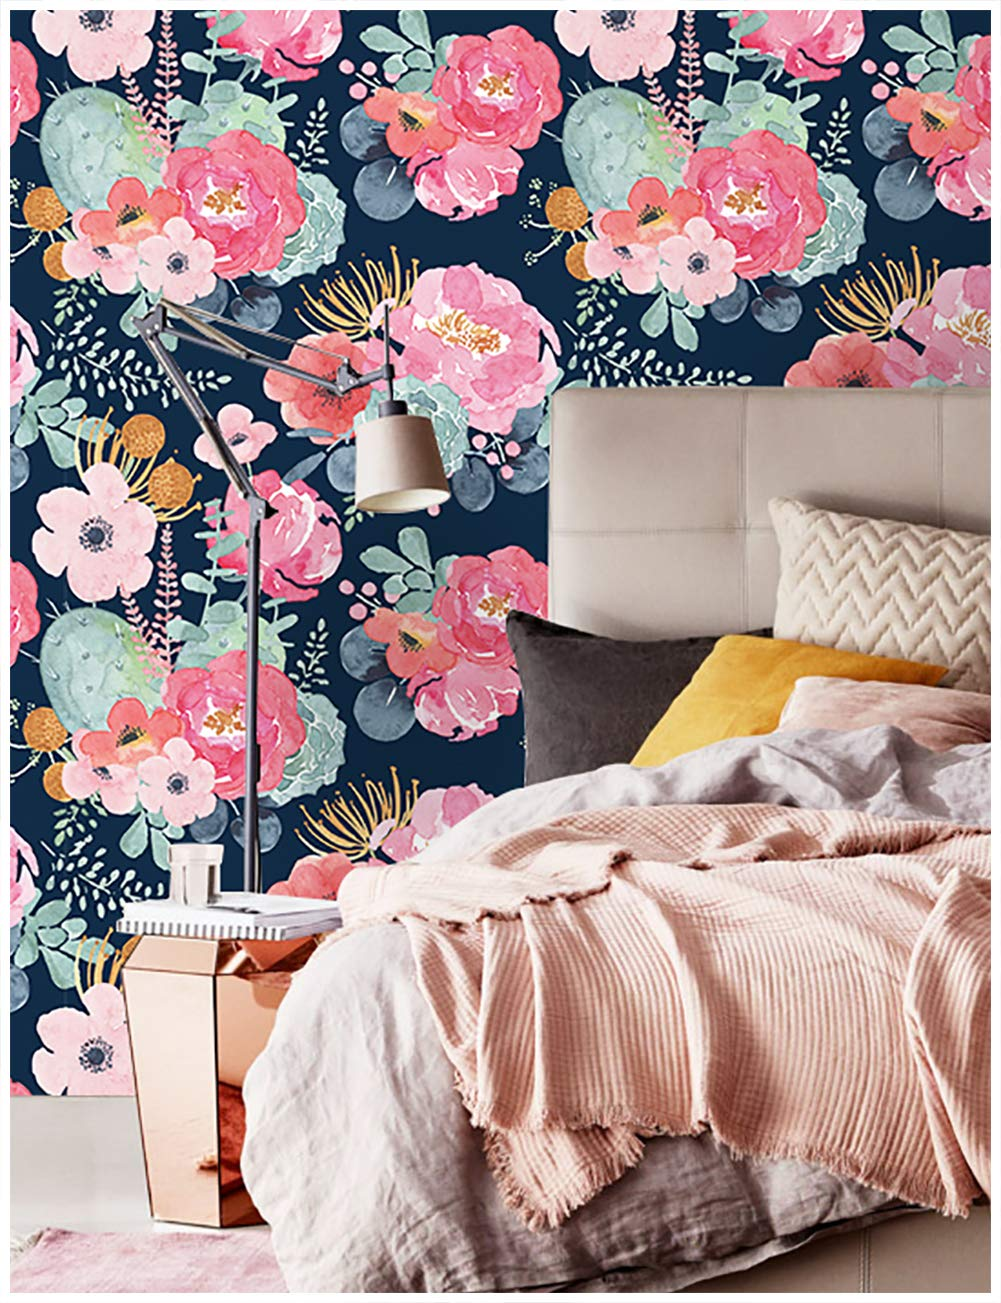 """HaokHome 93005-1 Peel and Stick Modern Floral Wallpaper Pink/Green/Navy Blue/Orange Vinyl Self Adhesive Prepasted Contact Paper Decorative 17.7""""x 9.8ft"""